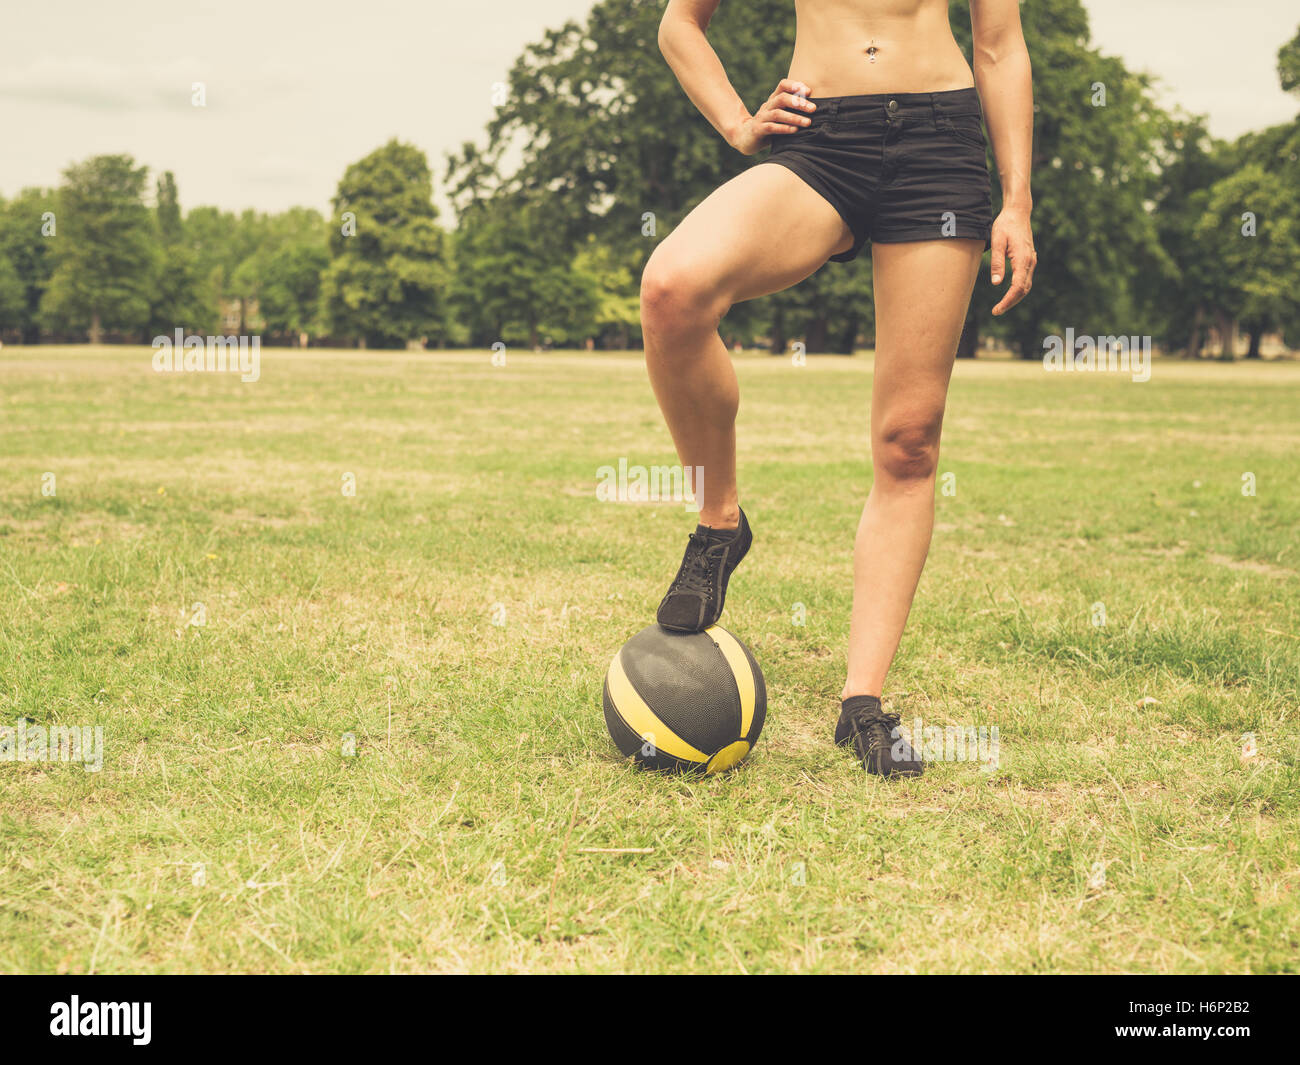 Vintage filtered shot of a fit and athletic young woman is standing on the grass in a park with a medicine ball - Stock Image